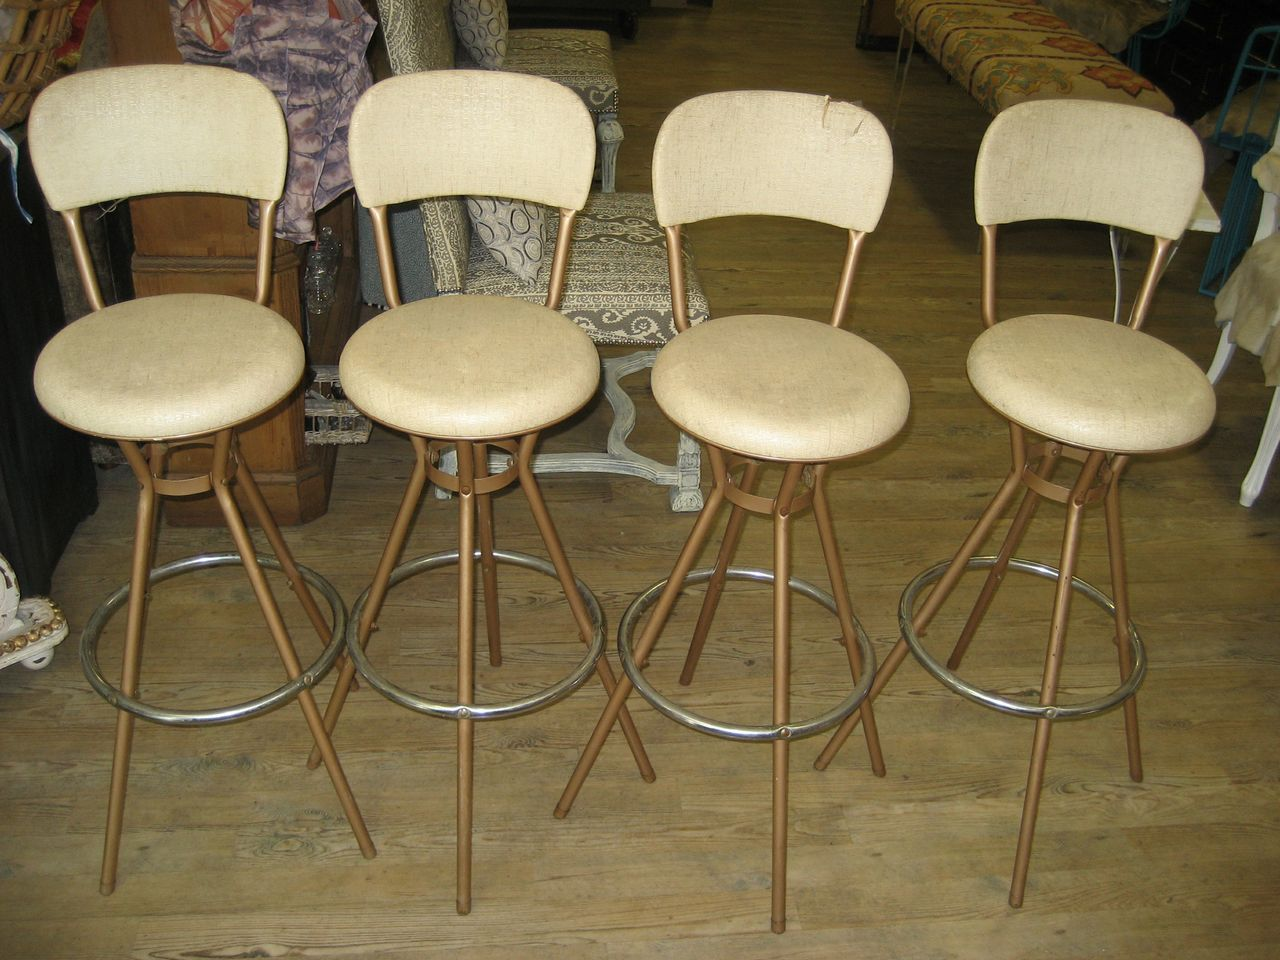 Drehsessel Vintage Vintage Swivel Bar Stools Barhocker Metal Bar Stools